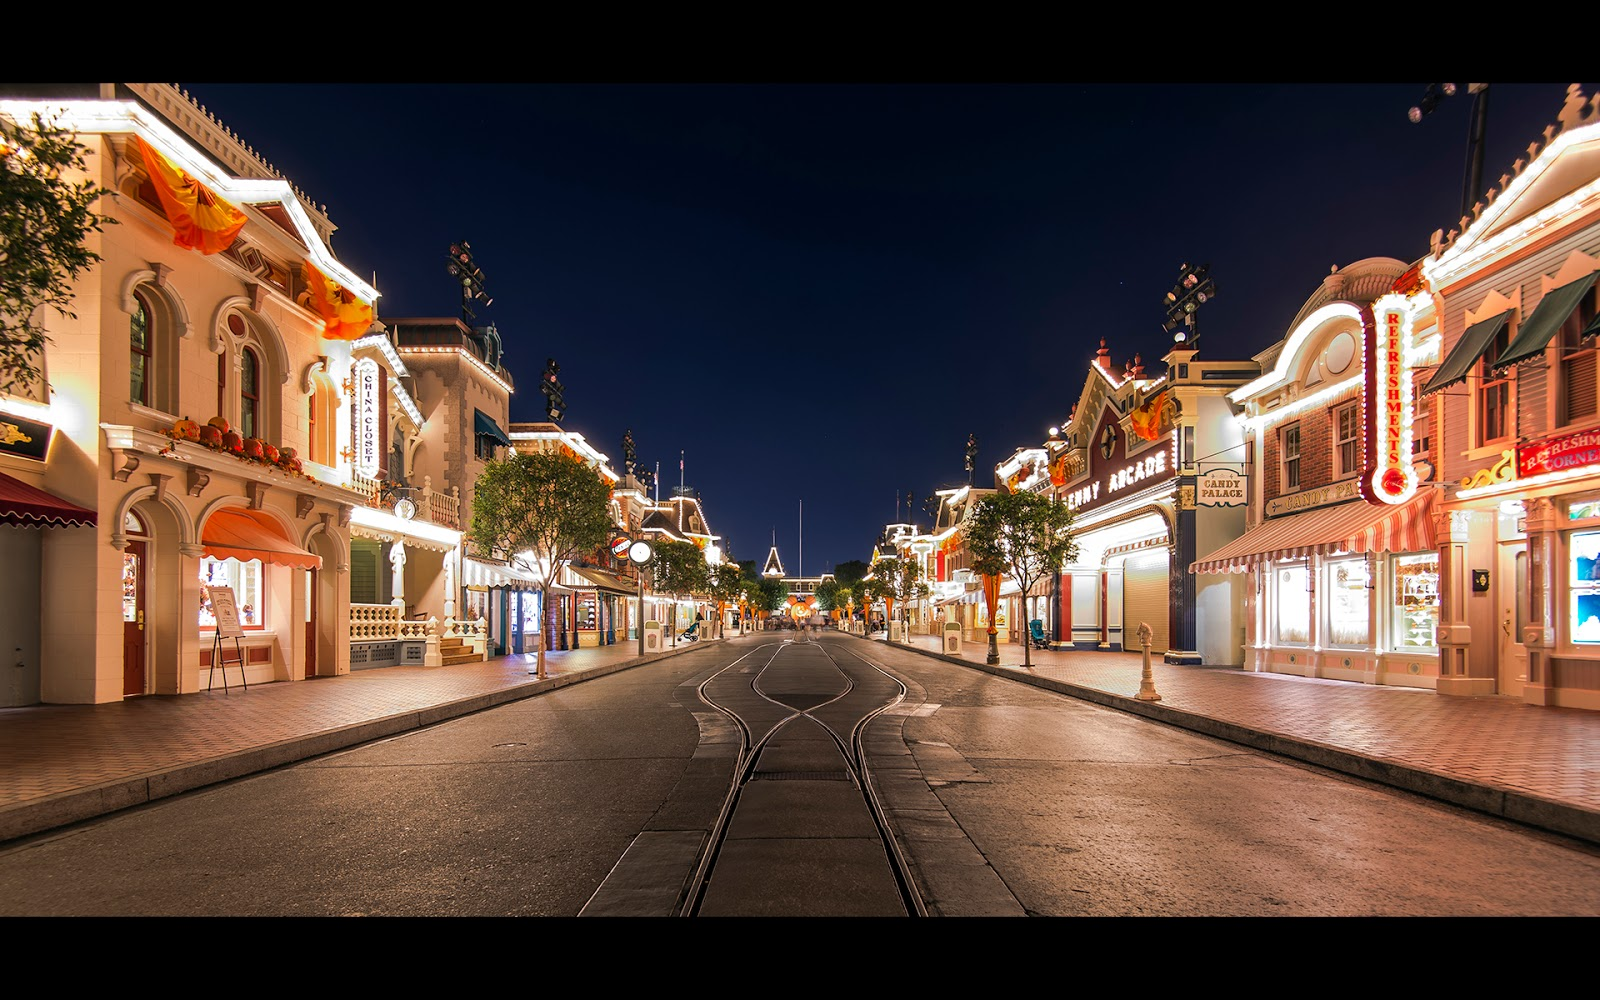 A Midnight Main Street In The Fall